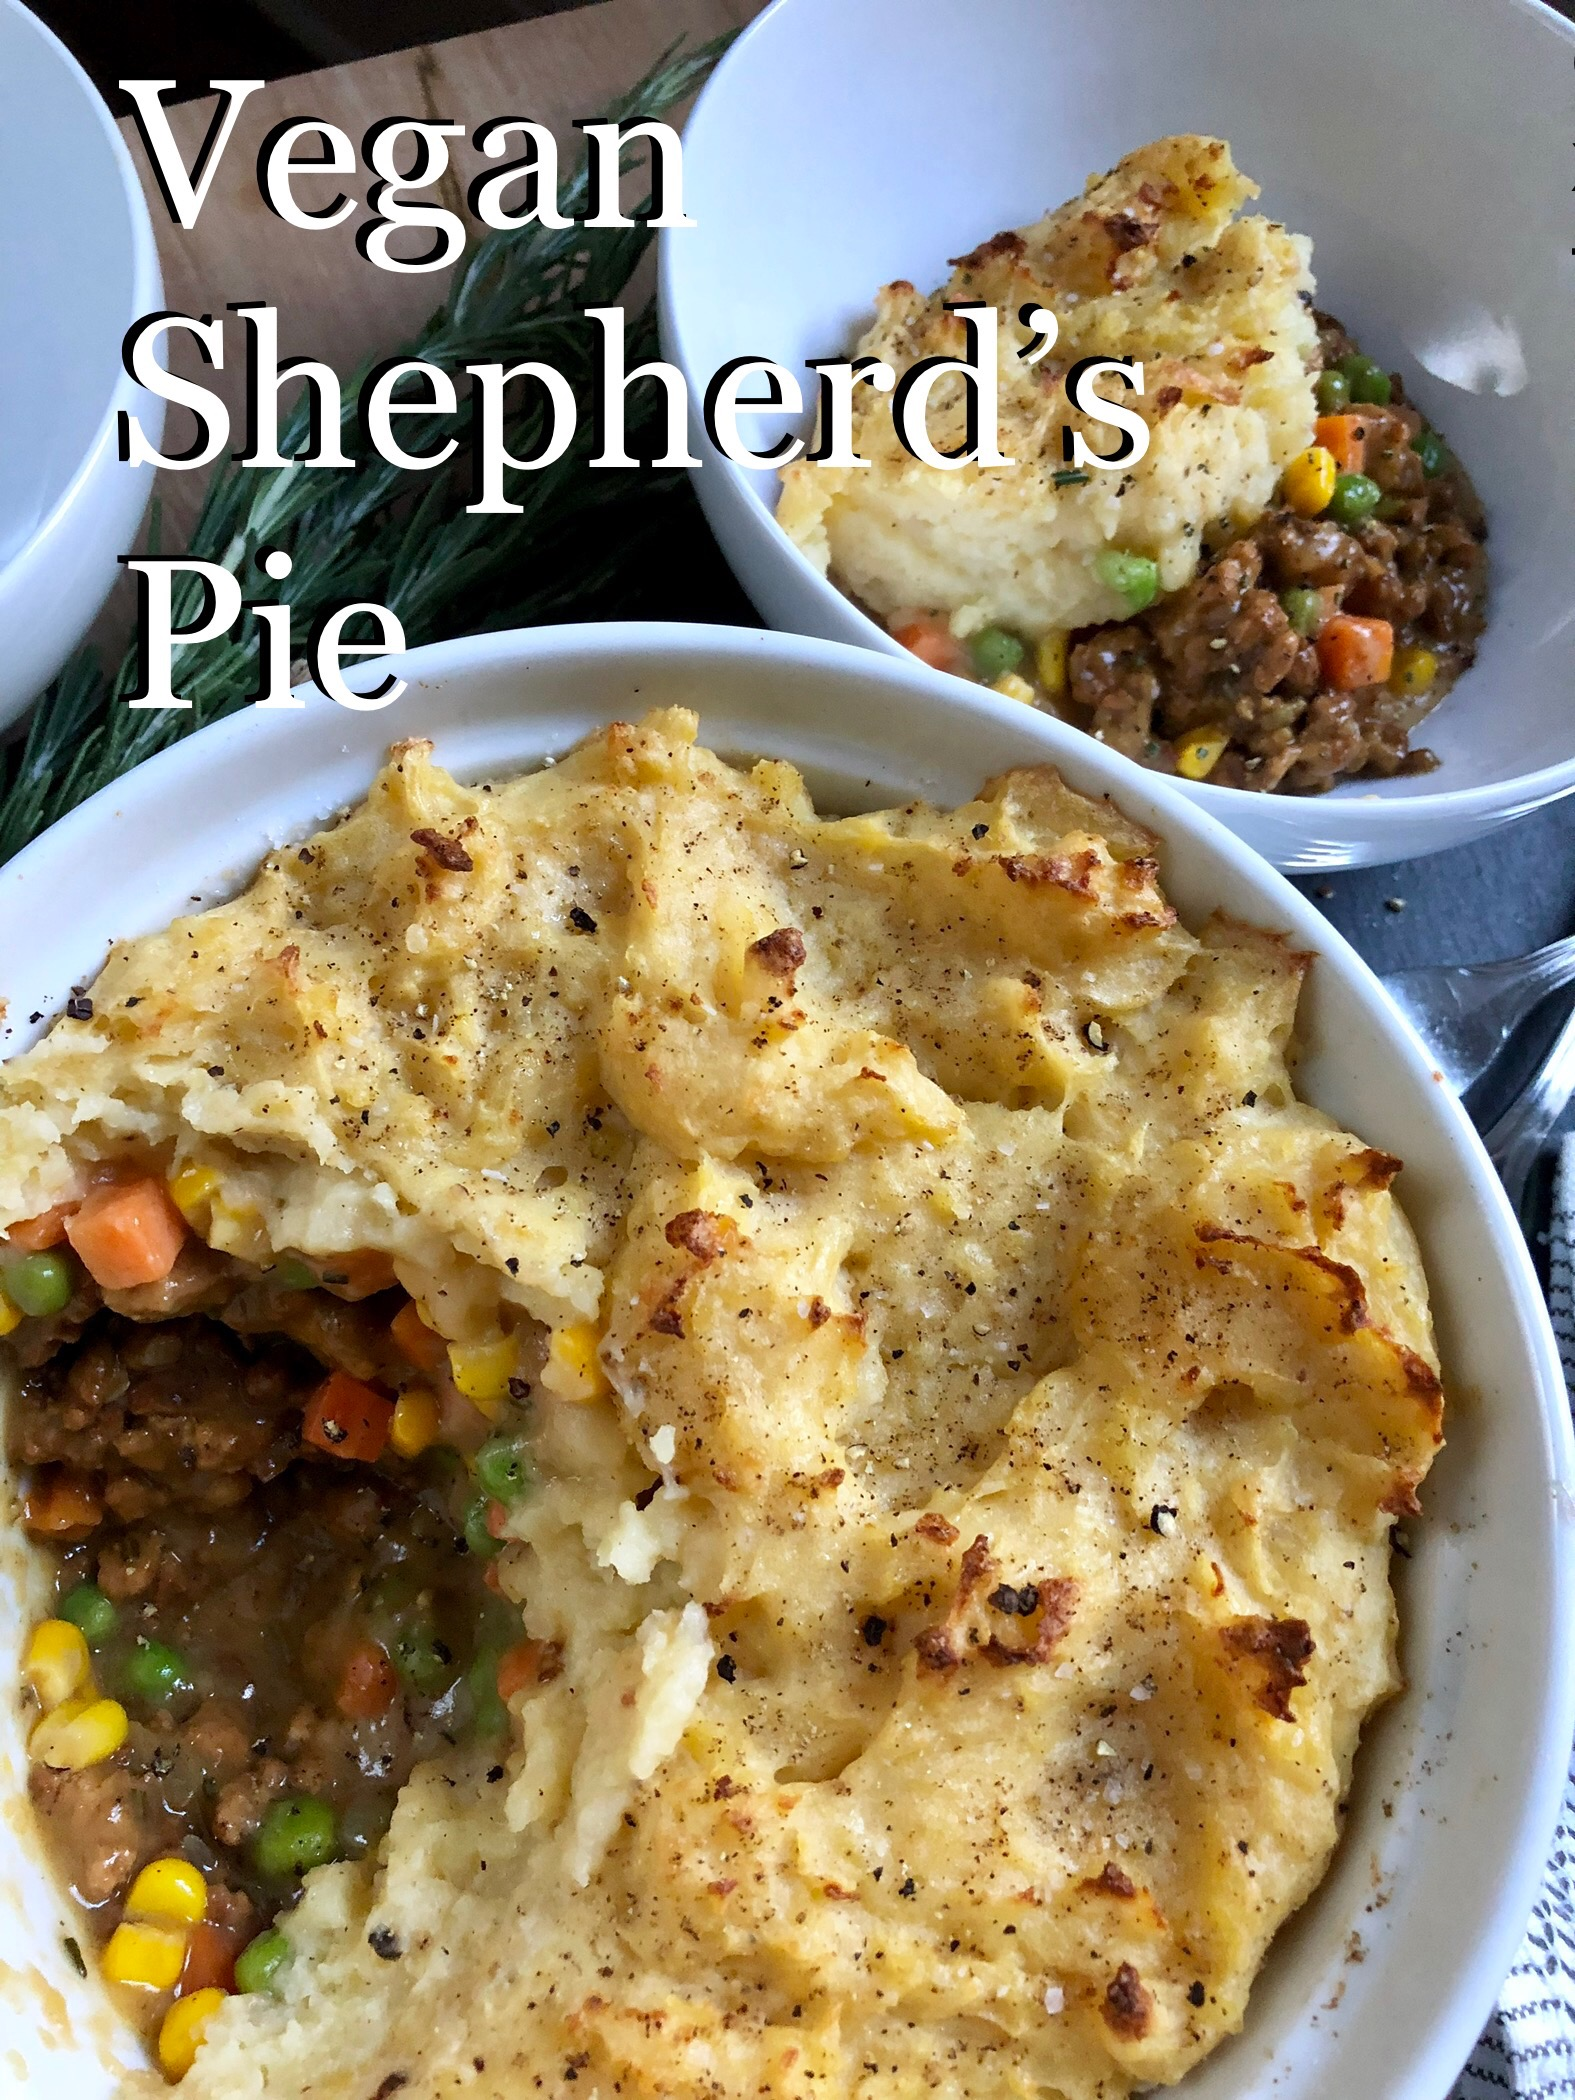 Vegan Shepherd's Pie with tofu crumbles, instant pot mashed potatoes and homemade gravy.